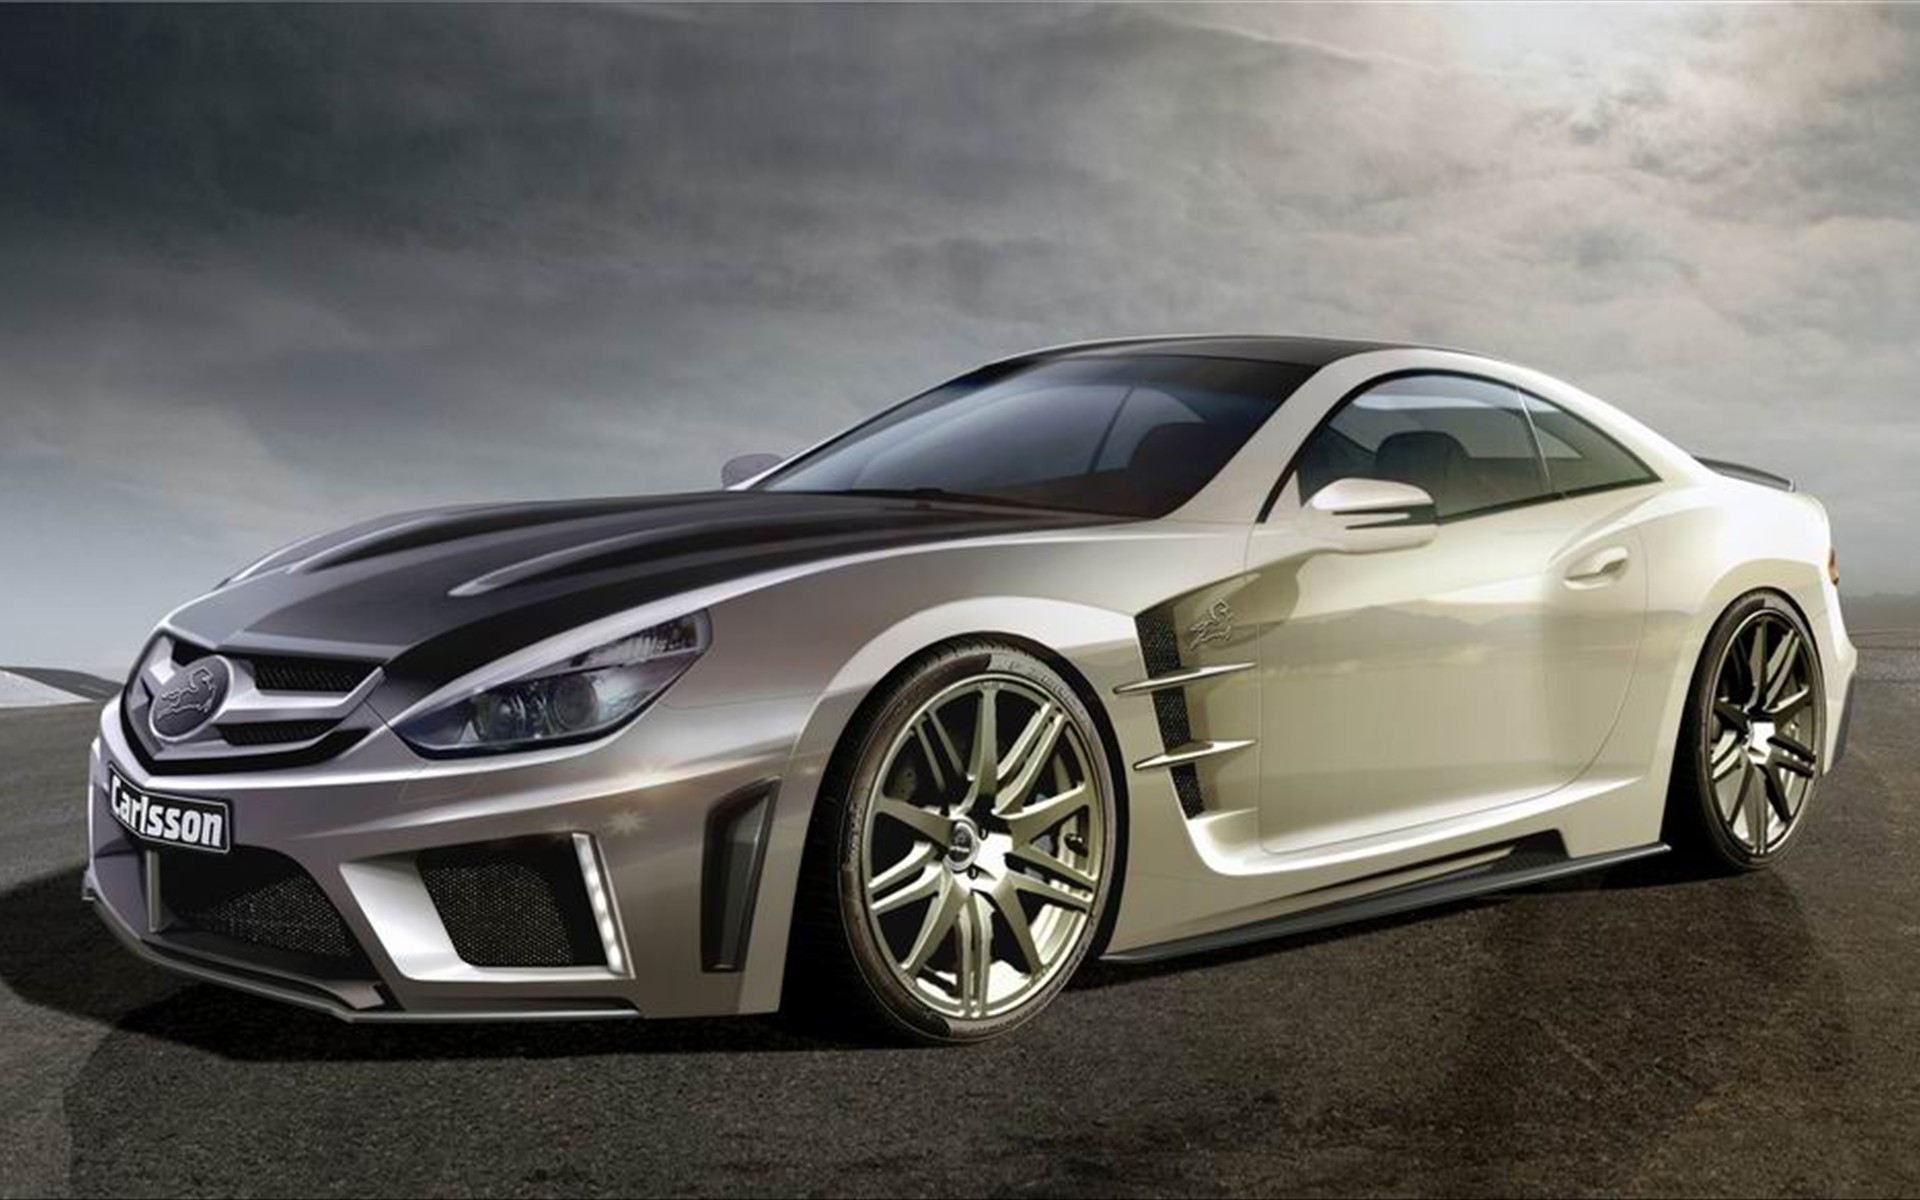 Carlsson C25 Super Car Wallpapers HD Wallpapers 1920x1200